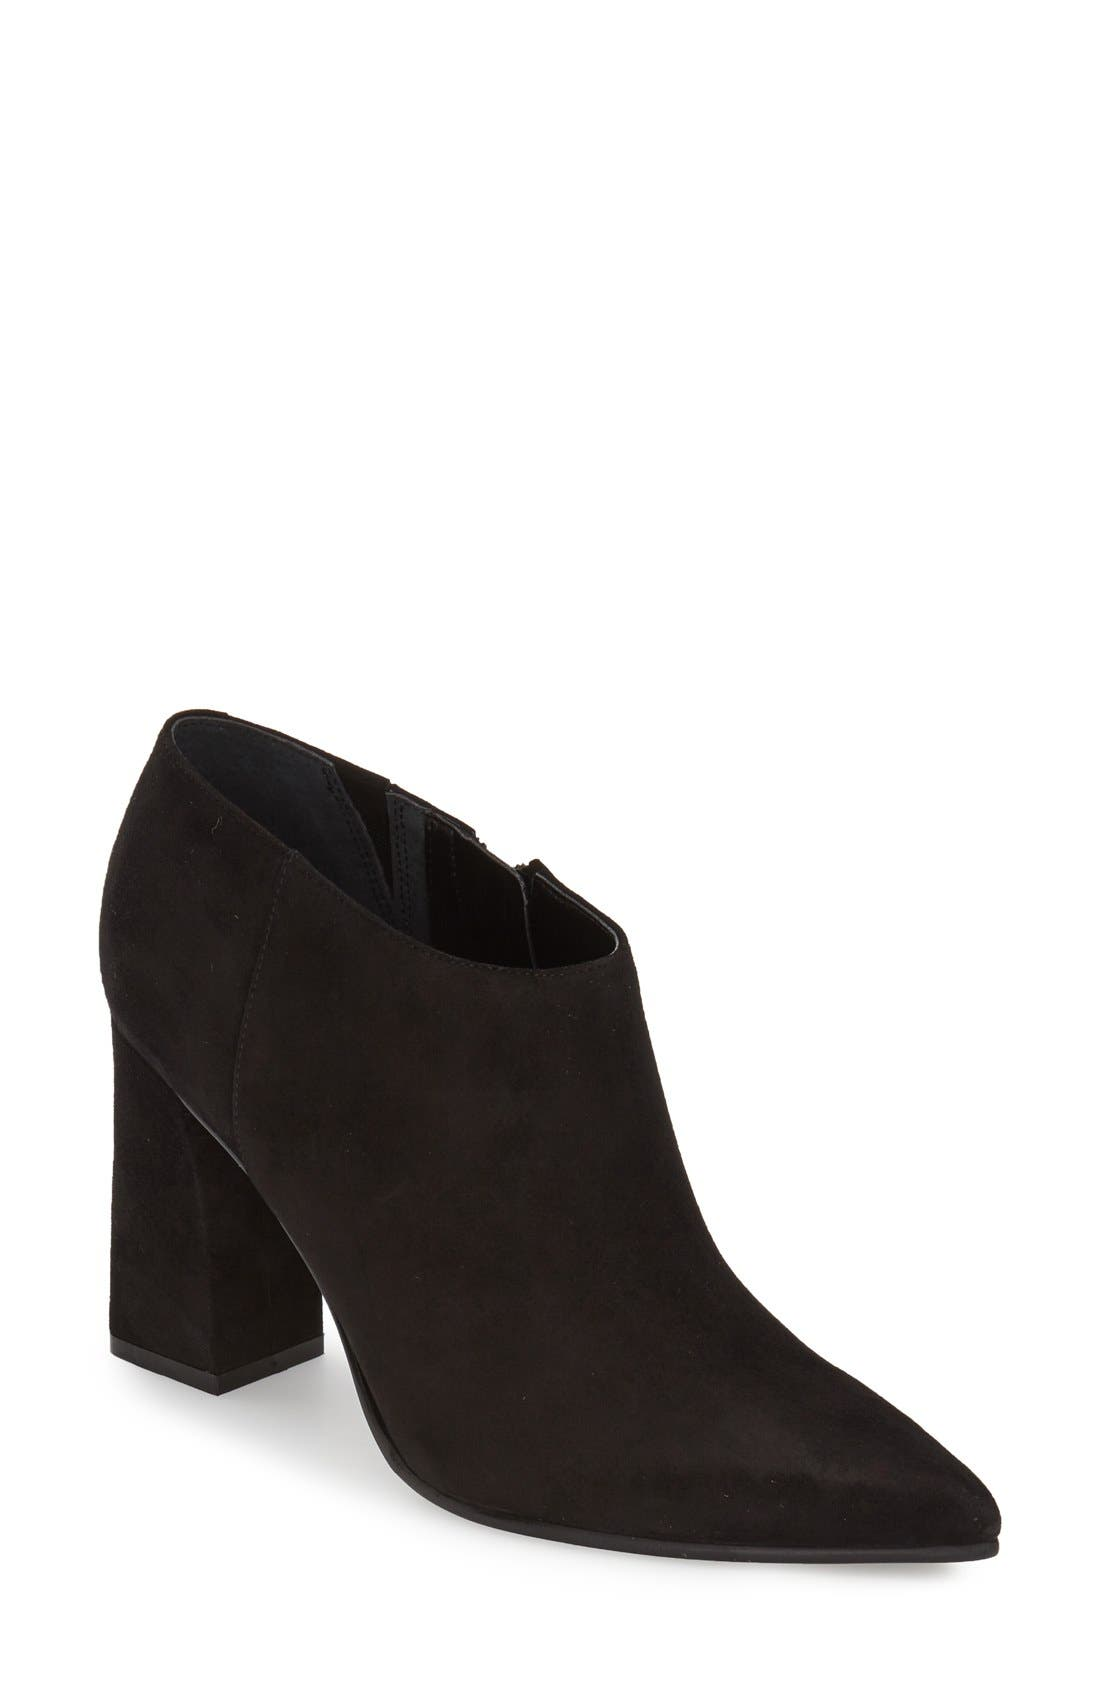 'Jayla' Block Heel Bootie,                         Main,                         color, Black Suede